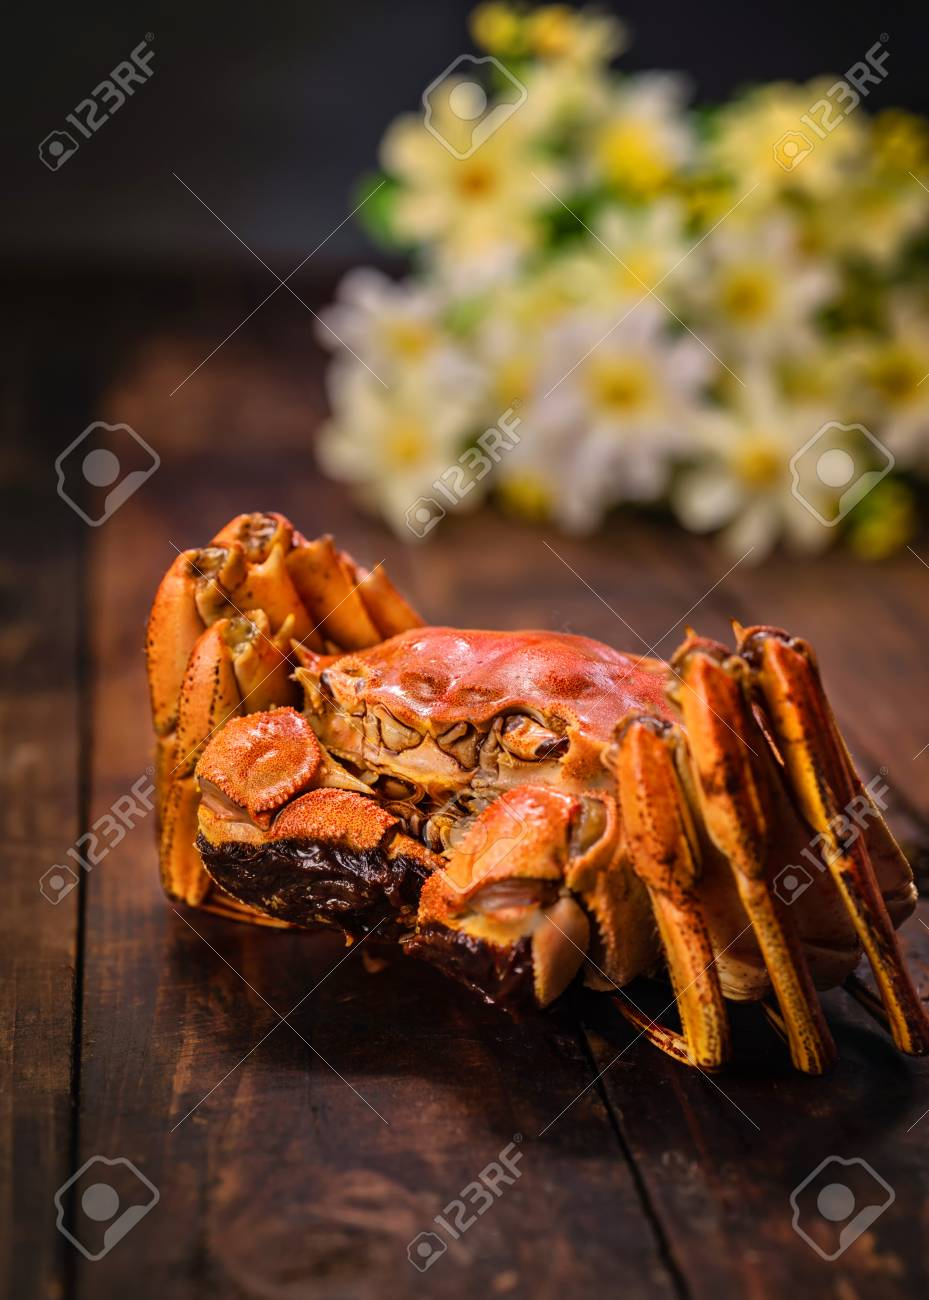 A hairy crab is on the table. - 111010794